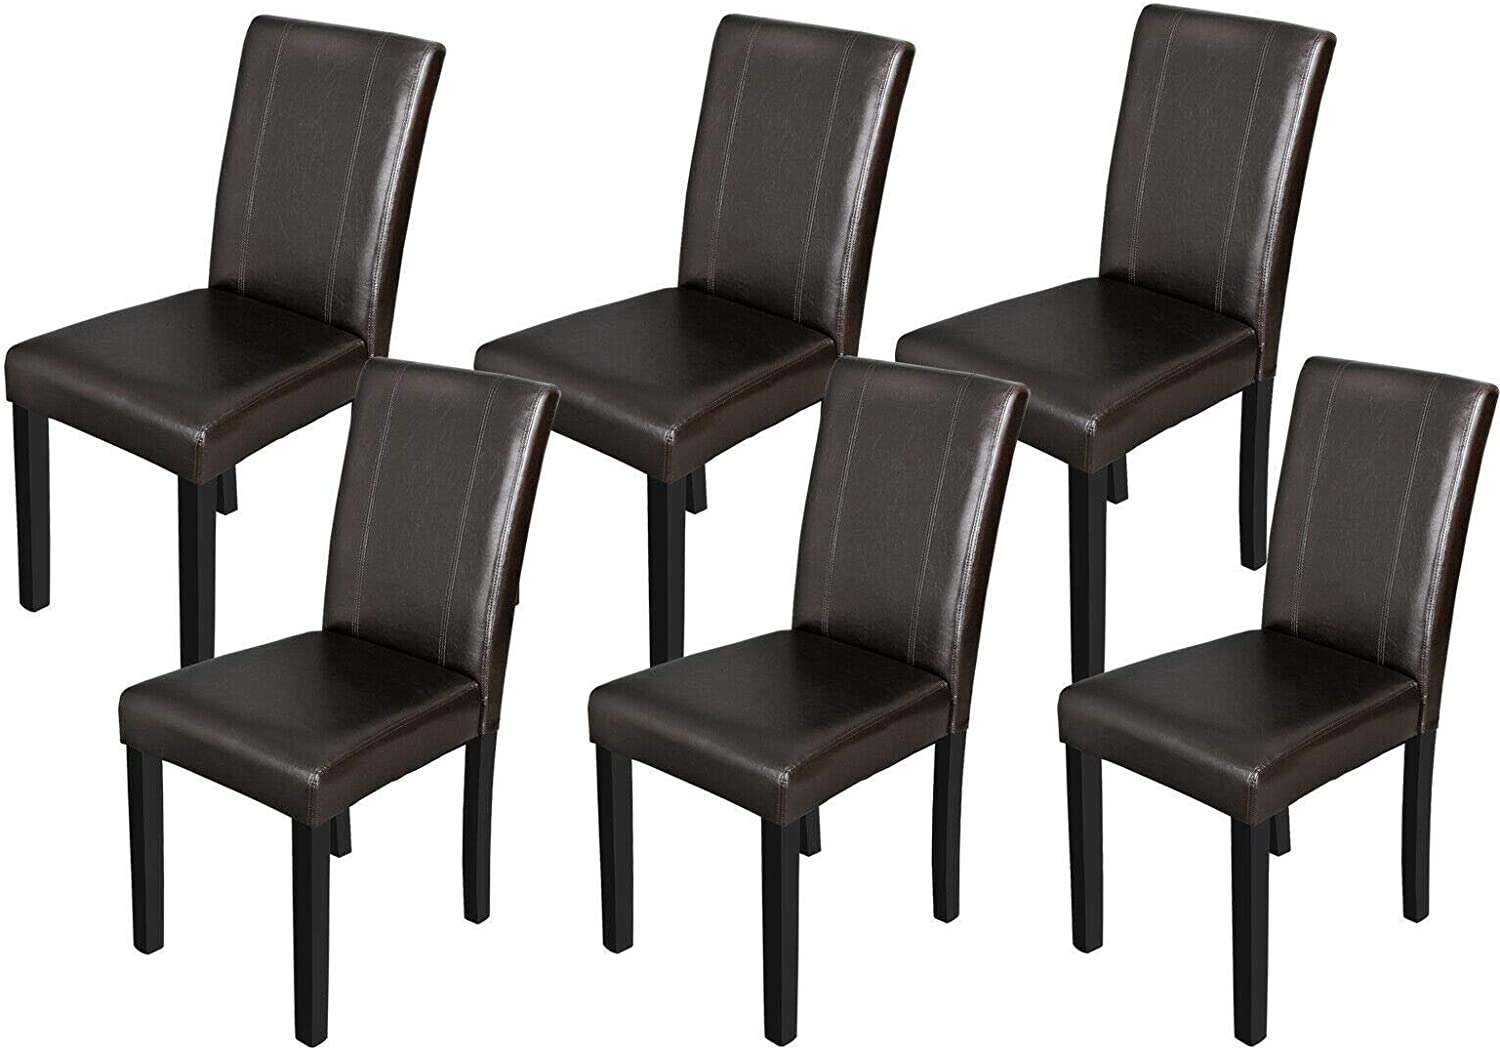 6 Set Brown Max 59% OFF Kitchen Formal Elegant Parson Lea Room Branded goods Chairs Dining